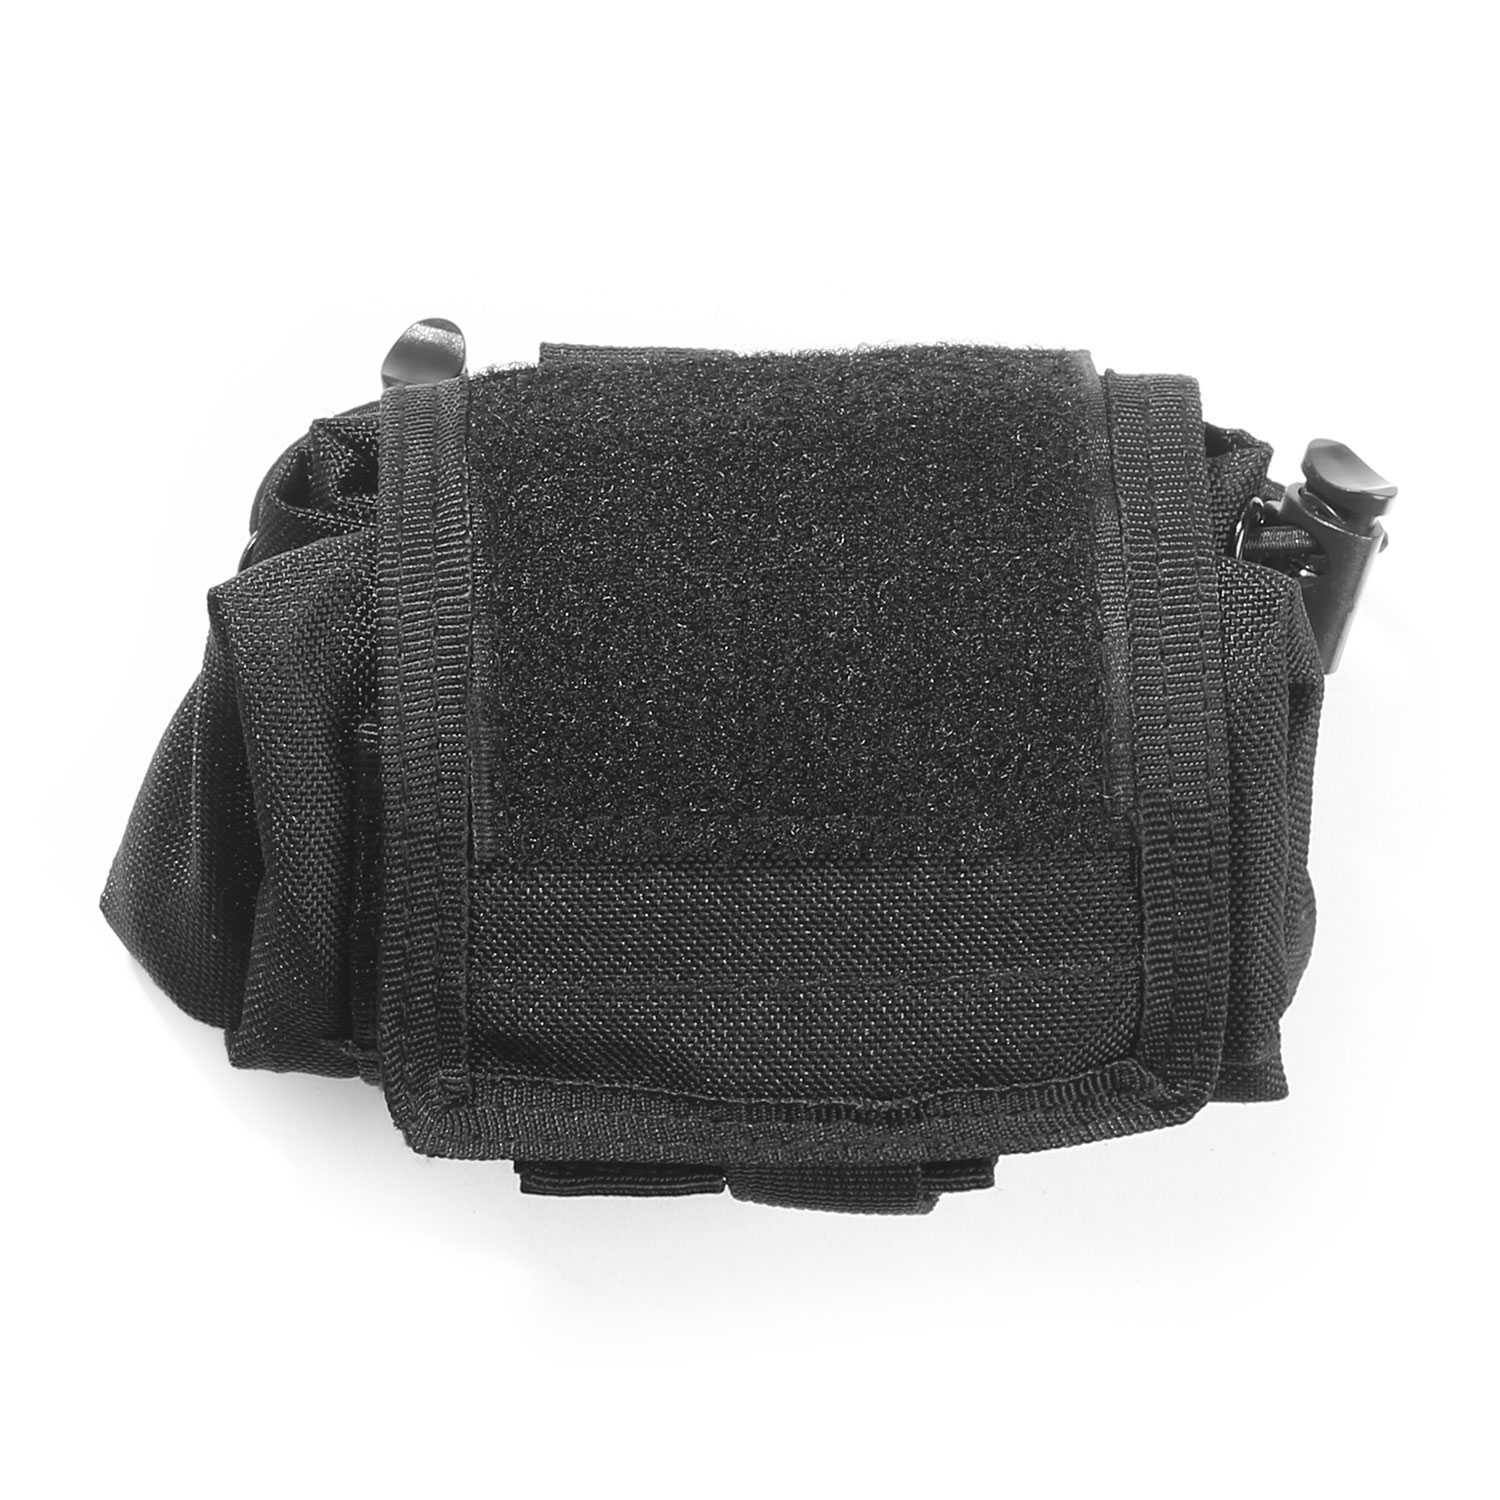 5ive Star Gear Rollable Dump Pouch